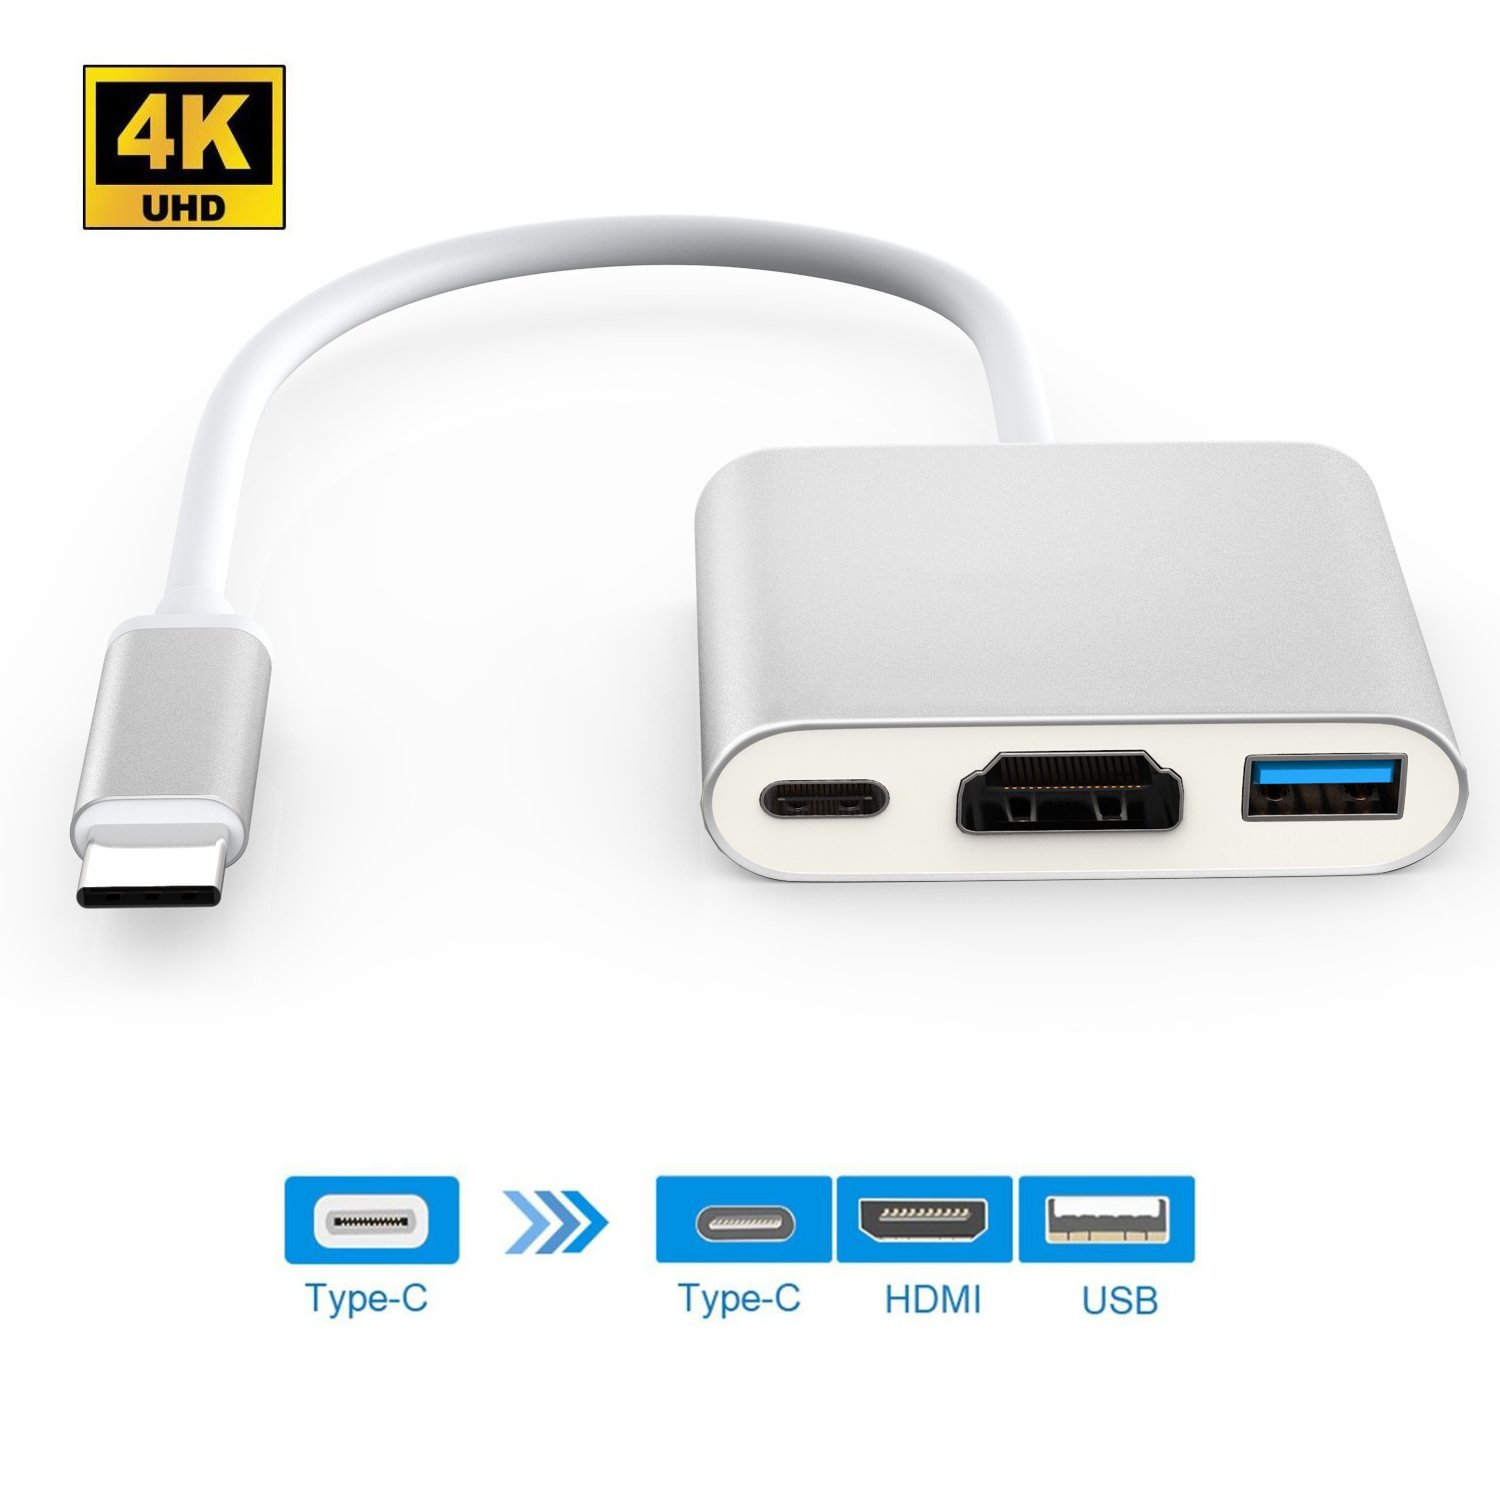 USB-C to HDMI Adapter 4K, HuDieM USB 3.1 Type C to HDMI Multiport AV Converter with USB 3.0 Port and USB C Charging Port for Macbook/ Chromebook Pixel/ Dell XPS13/ Samsung Galaxy s8/s8 Plus (Silver)